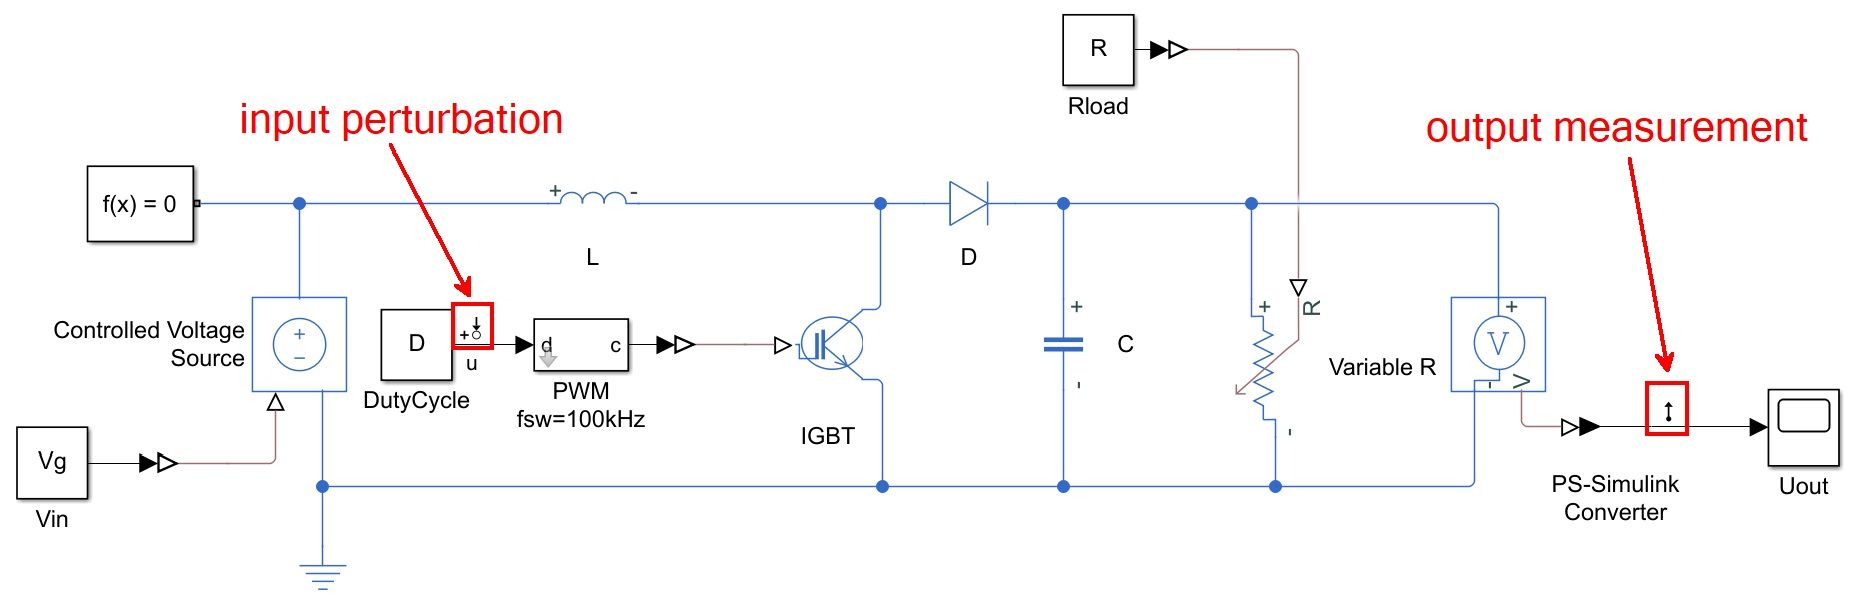 Figure 1. Switch-mode open-loop boost converter model with input perturbation and output measurement.